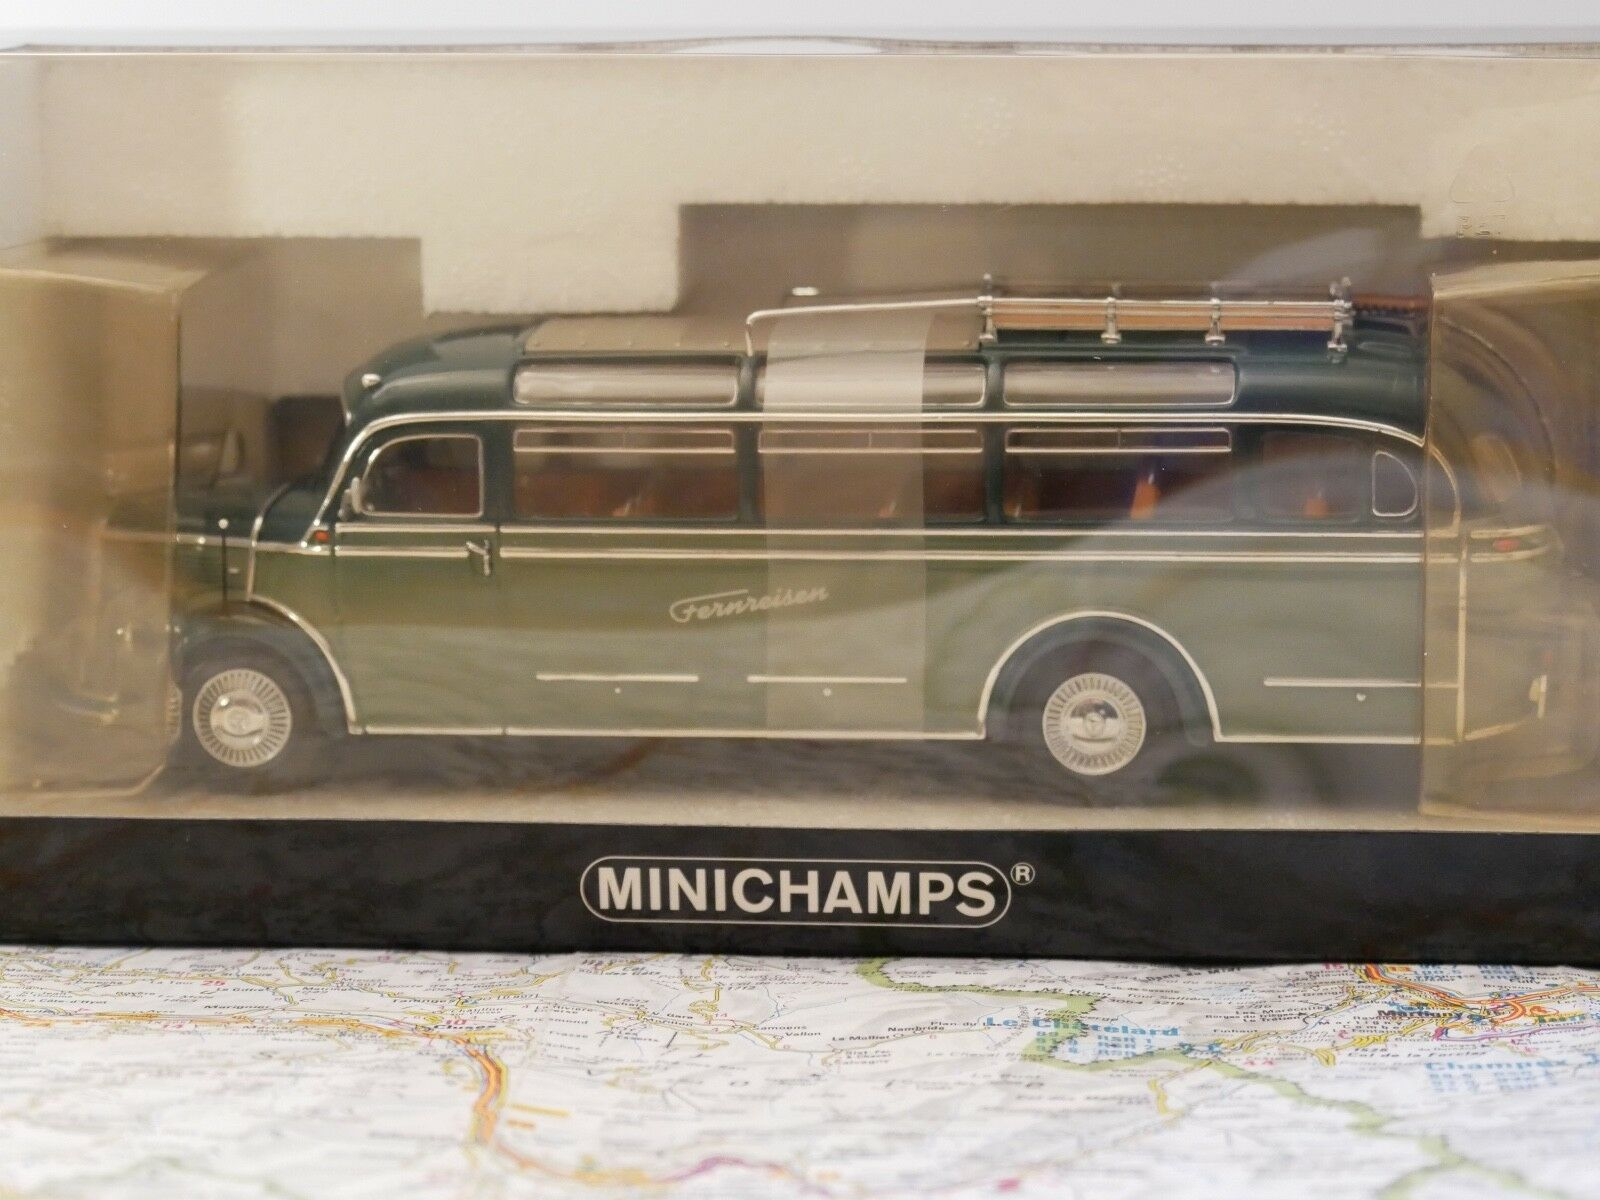 MINICHAMPS MERCEDES BENZ 0 3500 BUS 1955   FERNREISEN  1 43 ART.439360004 NEW